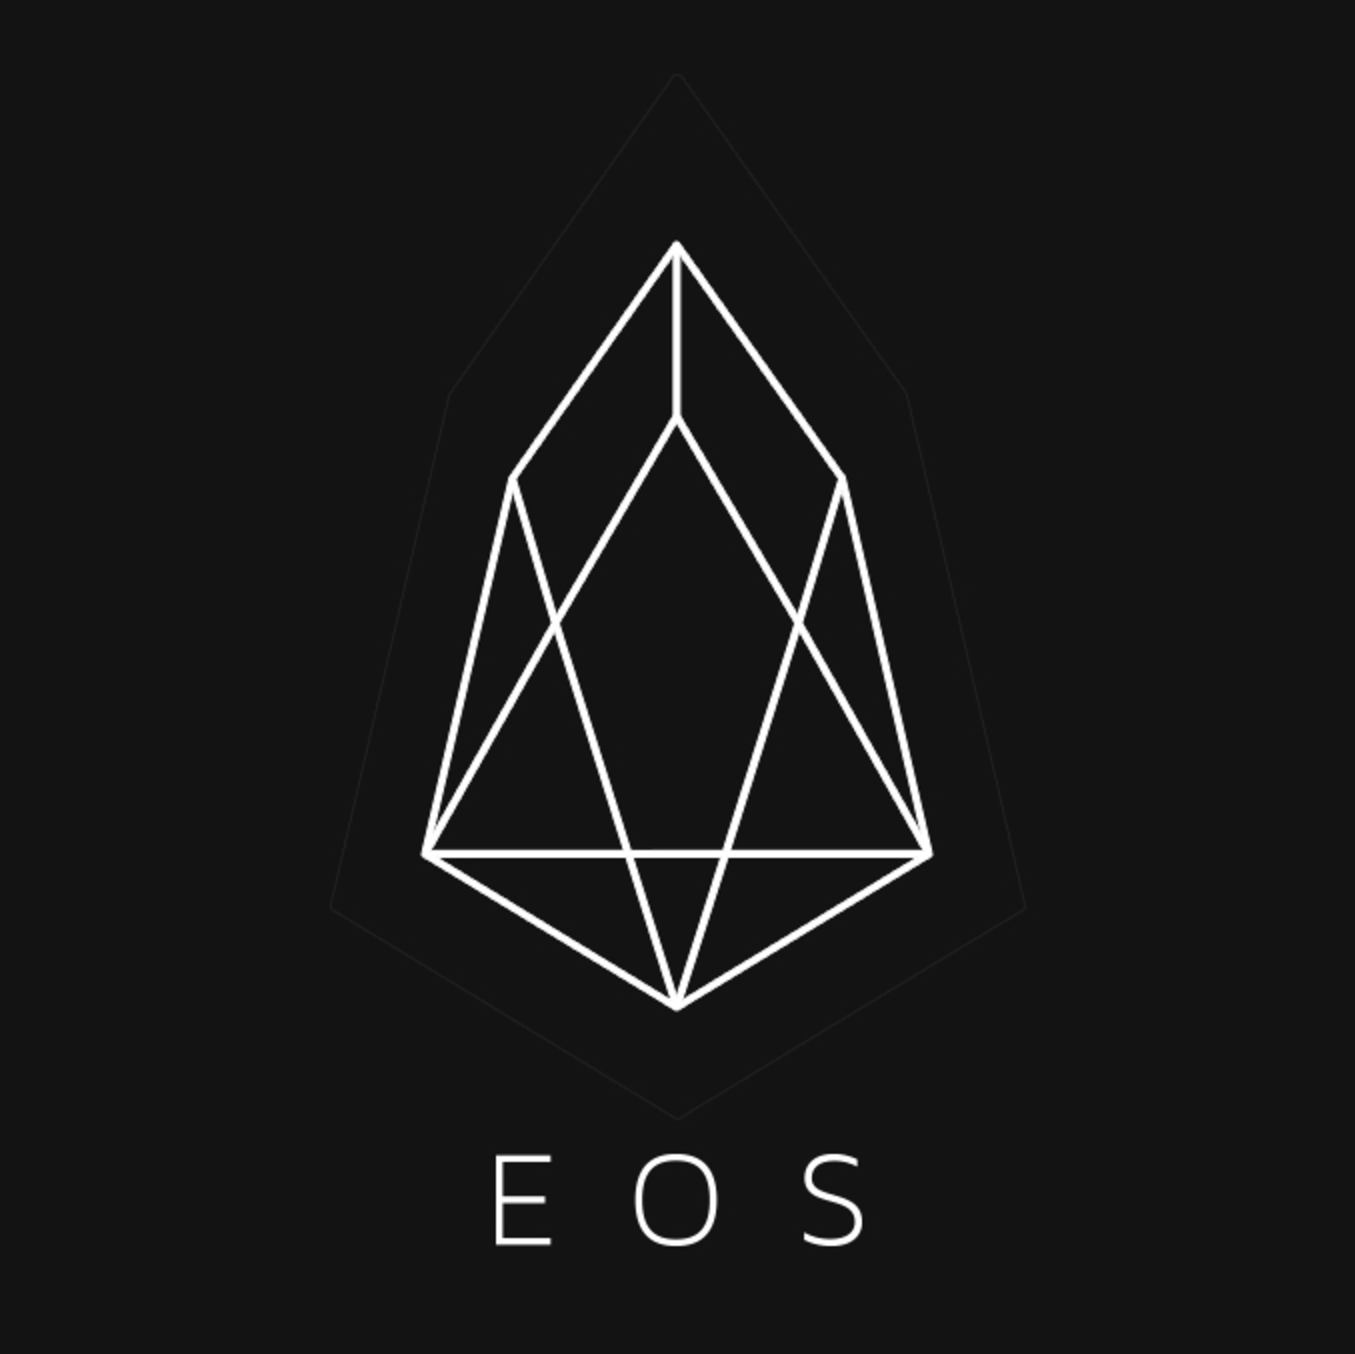 eos cryptocurrency logo